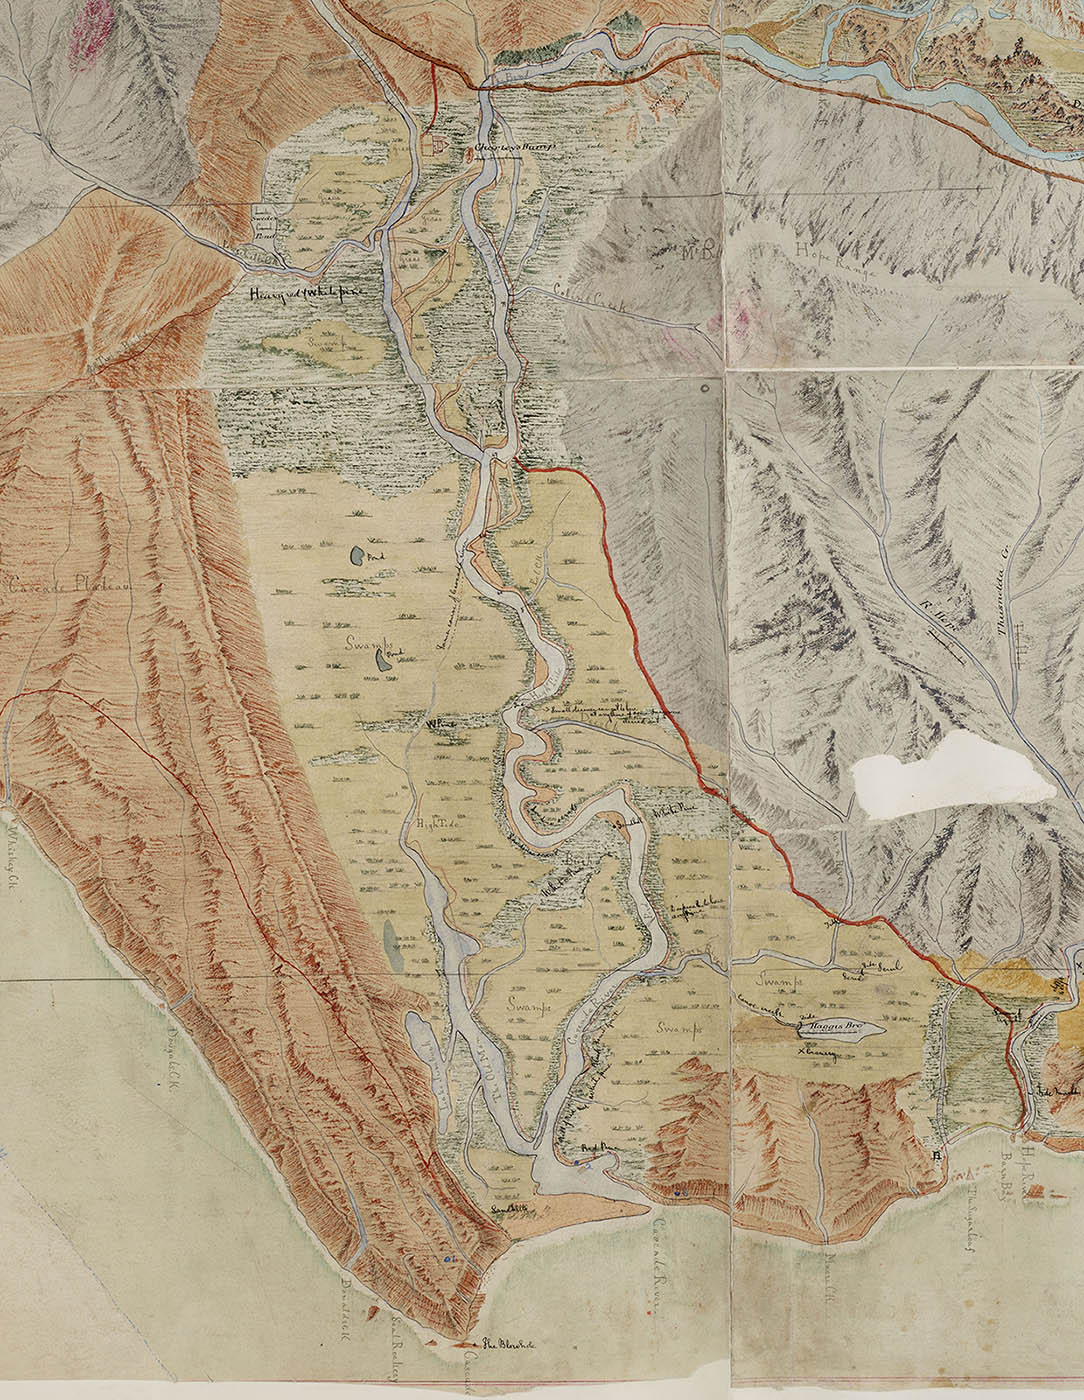 Excerpt from a hand sketched map showing mountain ranges, river.